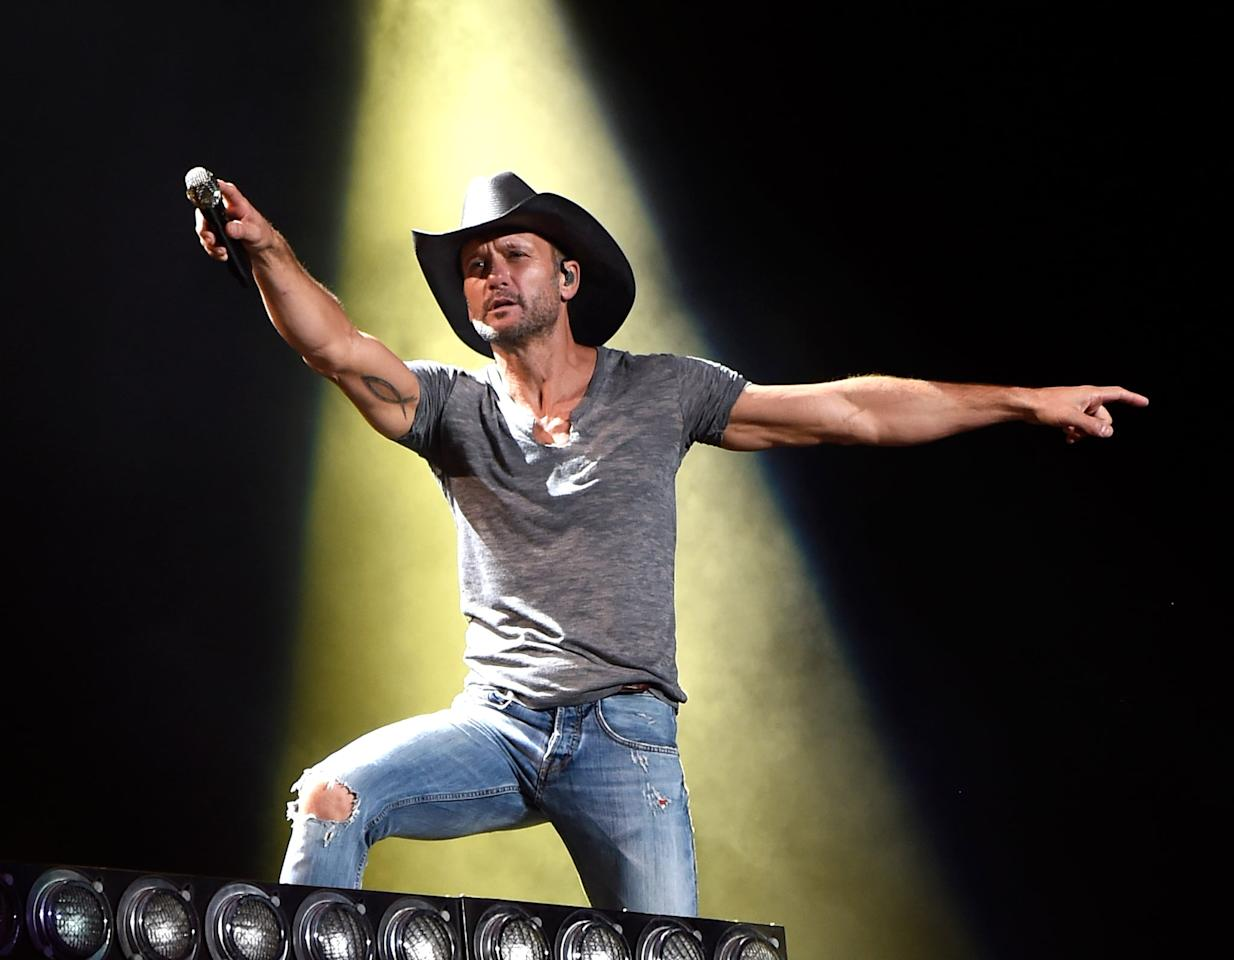 "<p><a href=""http://www.popsugar.com/Tim-McGraw"" class=""ga-track"" data-ga-category=""Related"" data-ga-label=""http://www.popsugar.com/Tim-McGraw"" data-ga-action=""In-Line Links"">Tim McGraw</a> recently released his book <strong>Grit &amp; Grace: Train the Mind, Train the Body, Own Your Life</strong>, but that doesn't seem to be the only project he has on his plate. Back in September 2019, McGraw confirmed that his new album is coming out in 2020. ""This project is <a href=""http://tasteofcountry.com/tim-mcgraws-new-song-album-interview/"" target=""_blank"" class=""ga-track"" data-ga-category=""Related"" data-ga-label=""http://tasteofcountry.com/tim-mcgraws-new-song-album-interview/"" data-ga-action=""In-Line Links"">really a tapestry of life</a>, and I can't wait for everybody to hear it,"" the singer told <strong>Taste of Country</strong>. </p> <p><strong>Release date</strong>: TBA</p>"